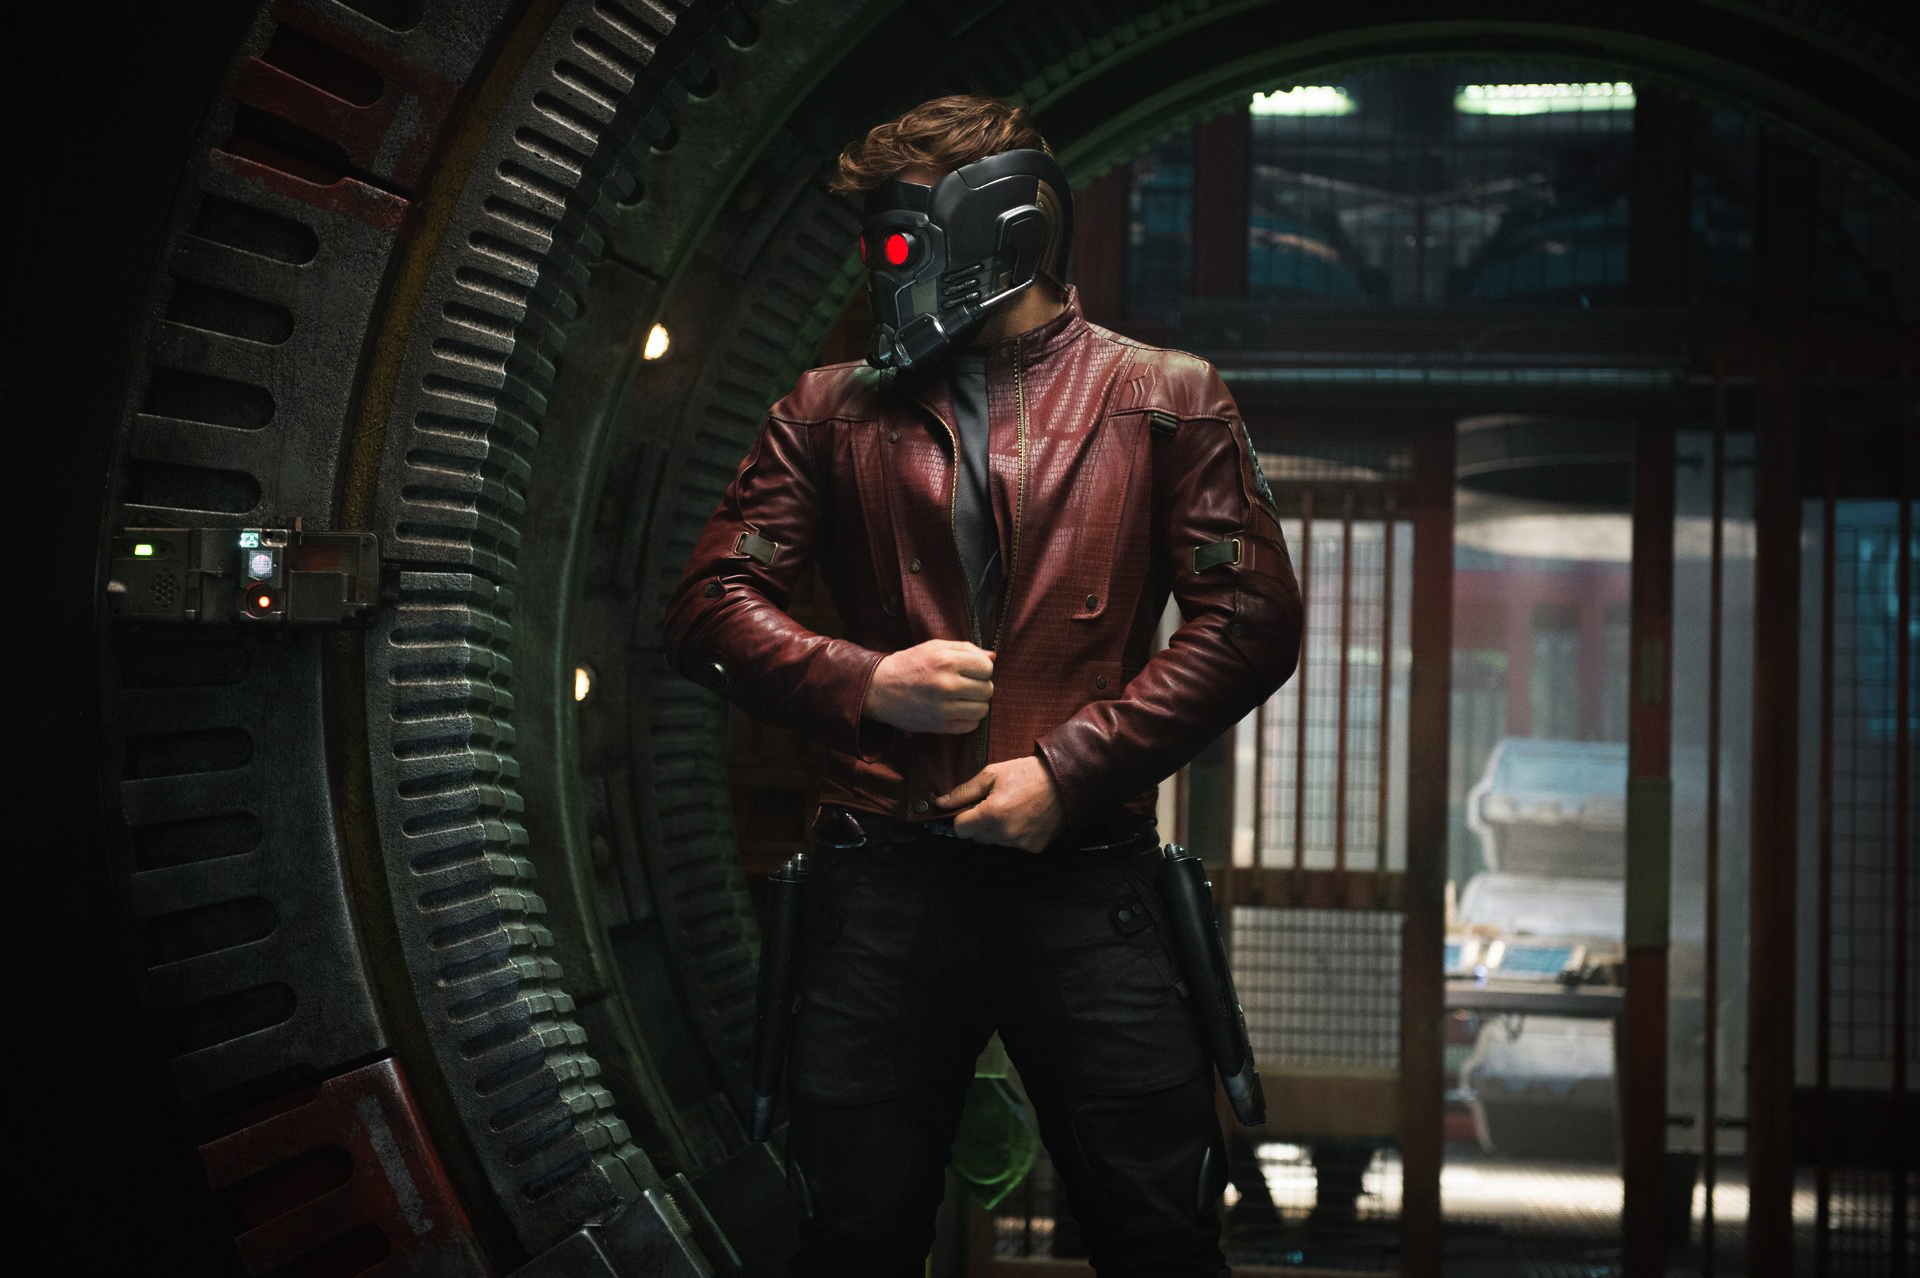 guardians-of-the-galaxy-star-lord-3